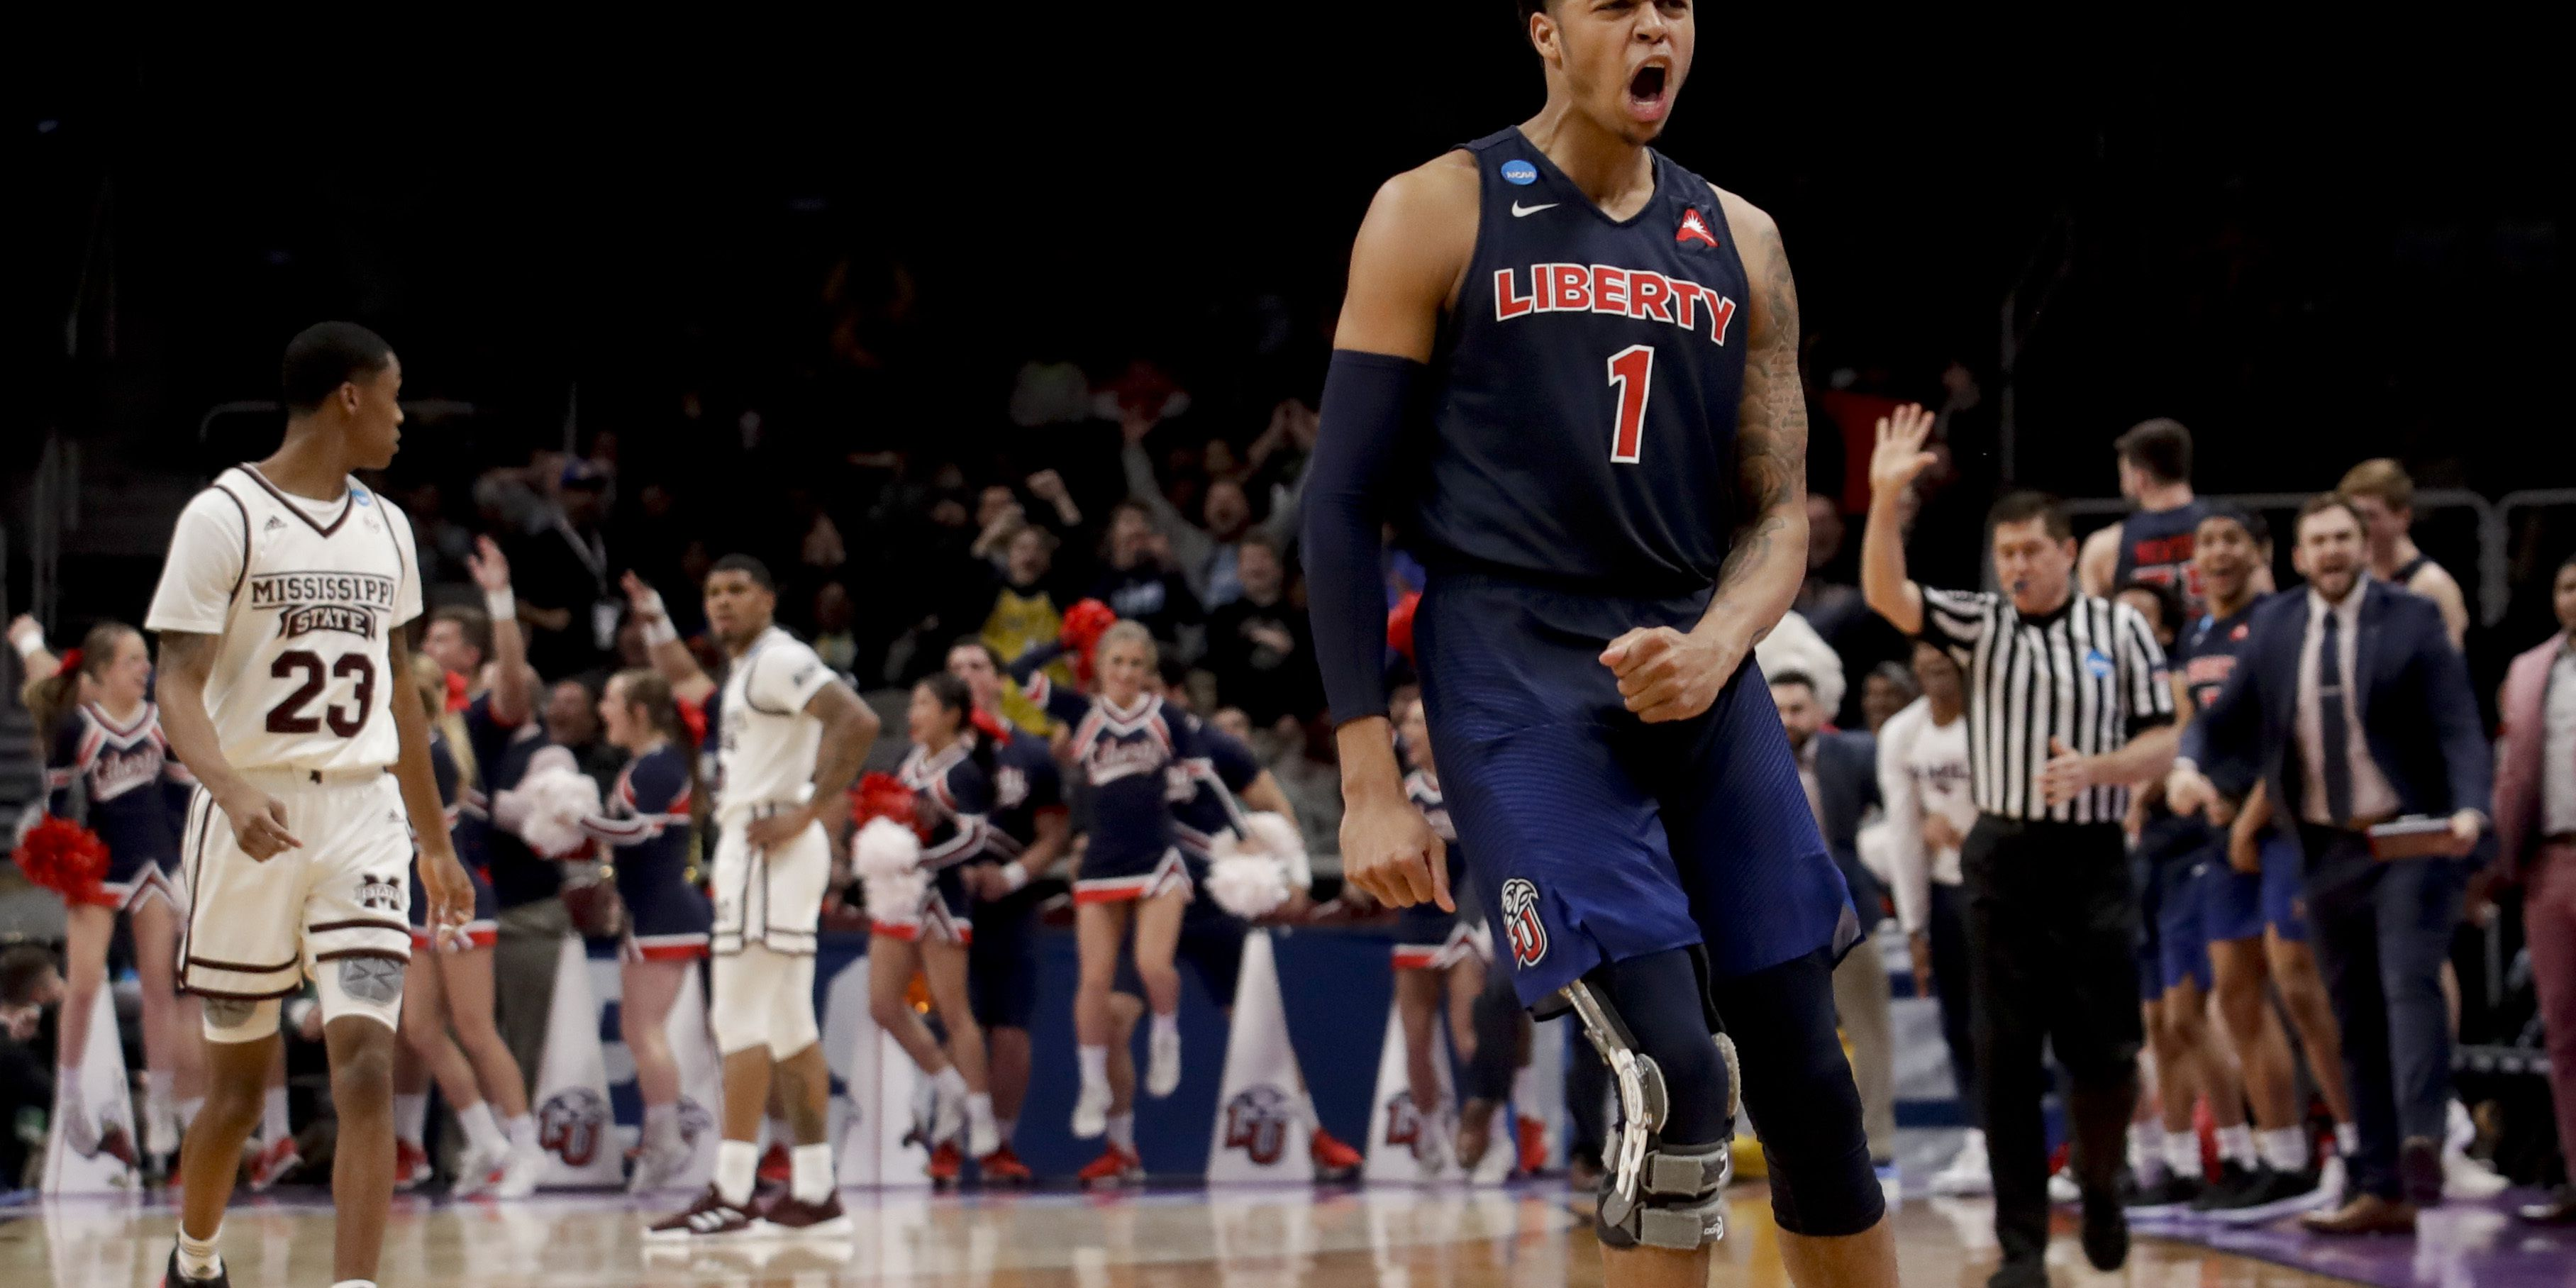 Liberty upsets Mississippi St. 80-76 for 1st tourney win